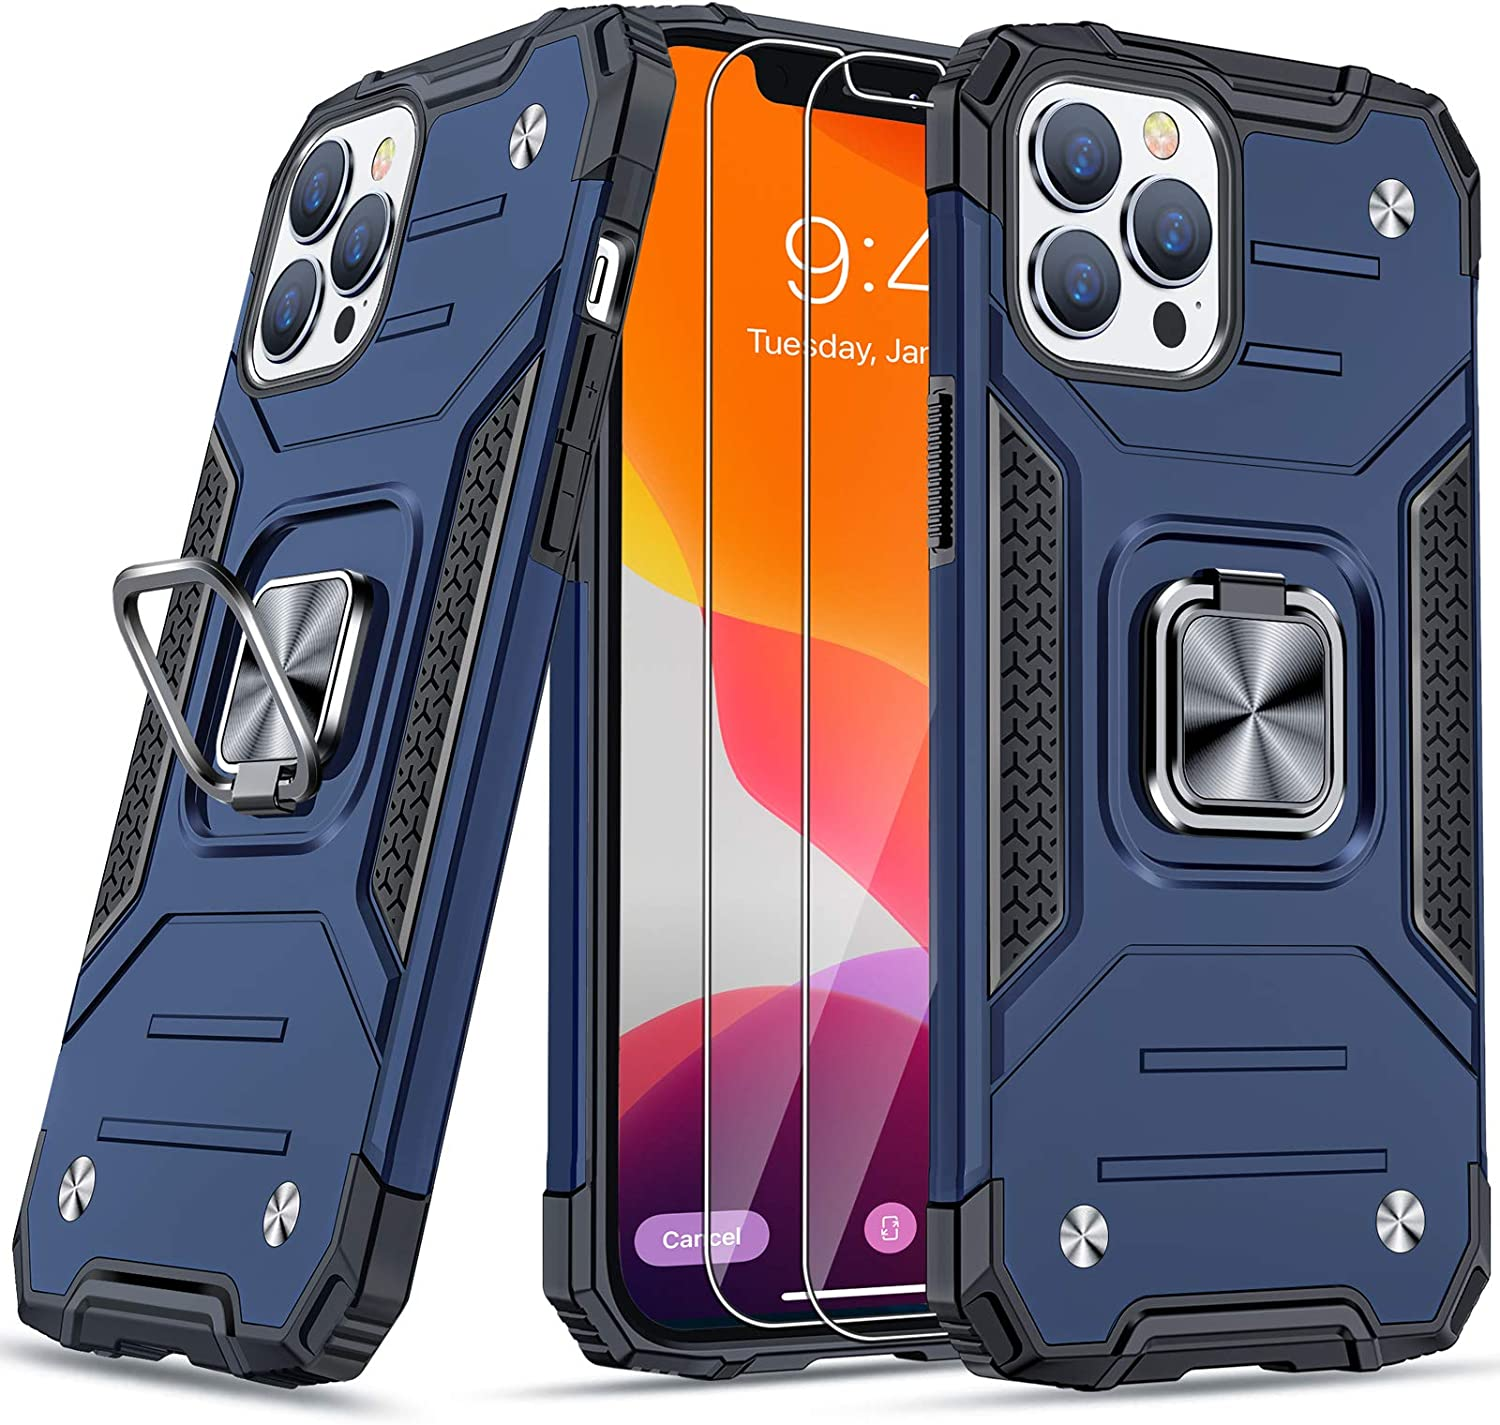 """JAME Case for iPhone 12 Pro Max Case with Screen Protectors 2Pcs, Military-Grade Drop Protection Cover, Protective Phone Cases, with Ring Kickstand, Bumper Case for iPhone 12 Pro Max 6.7"""" Blue"""